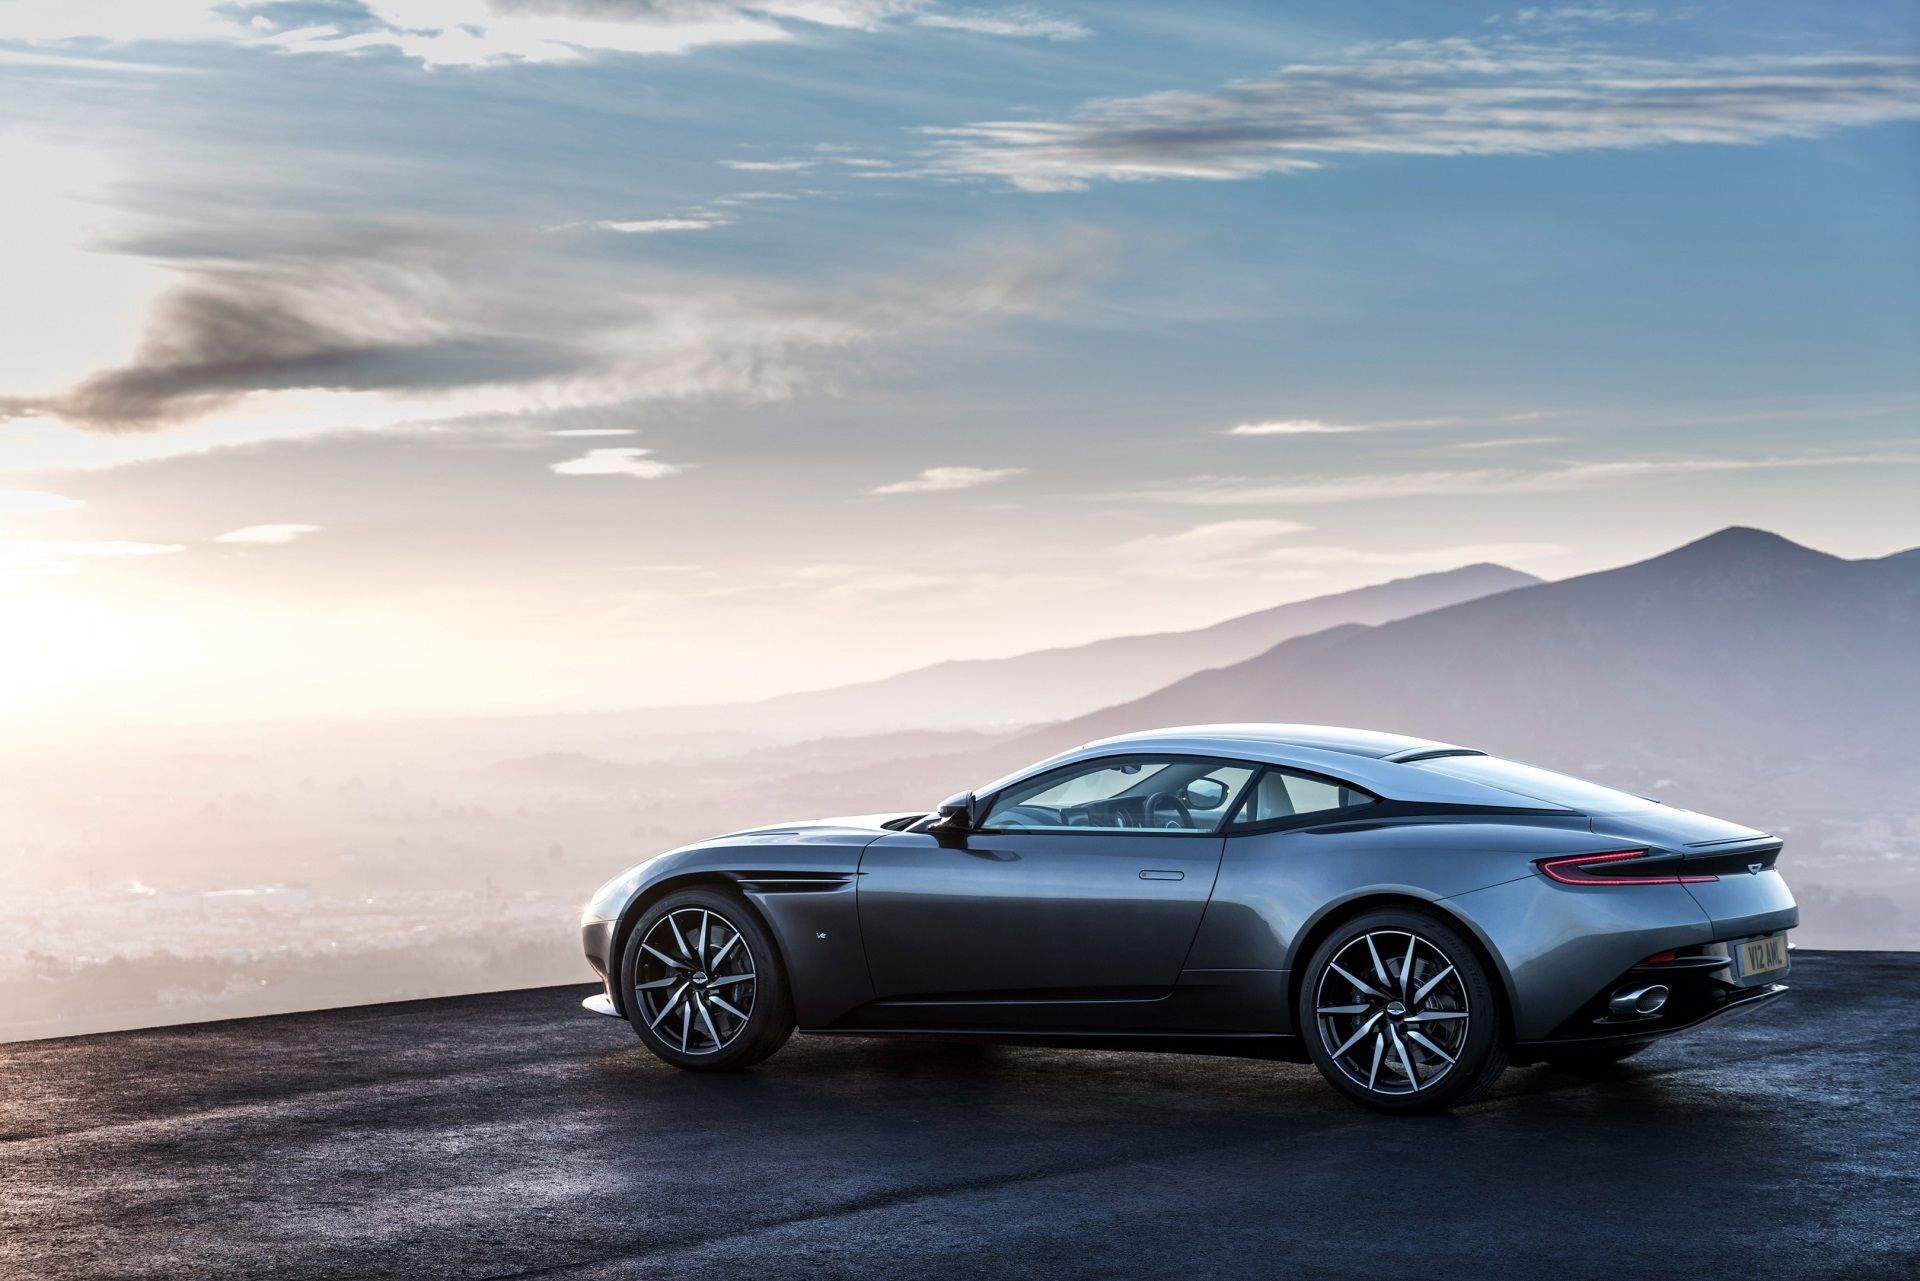 1920x1281 Aston Martin Windows Background Wallpaper Wallpapers And